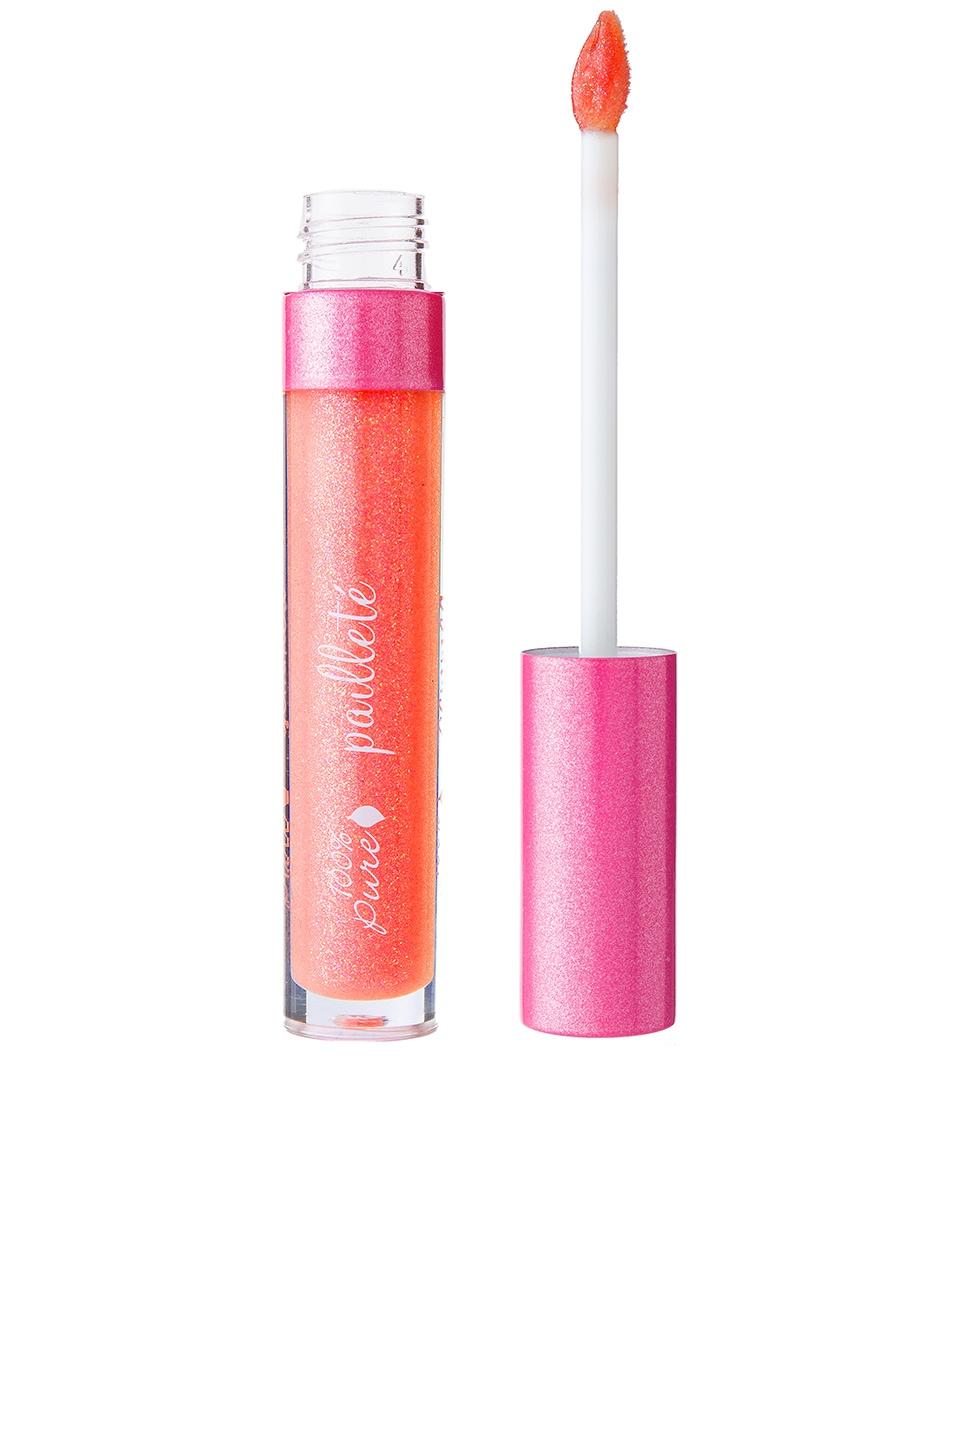 100% Pure Gemmed Lip Gloss in Citrine